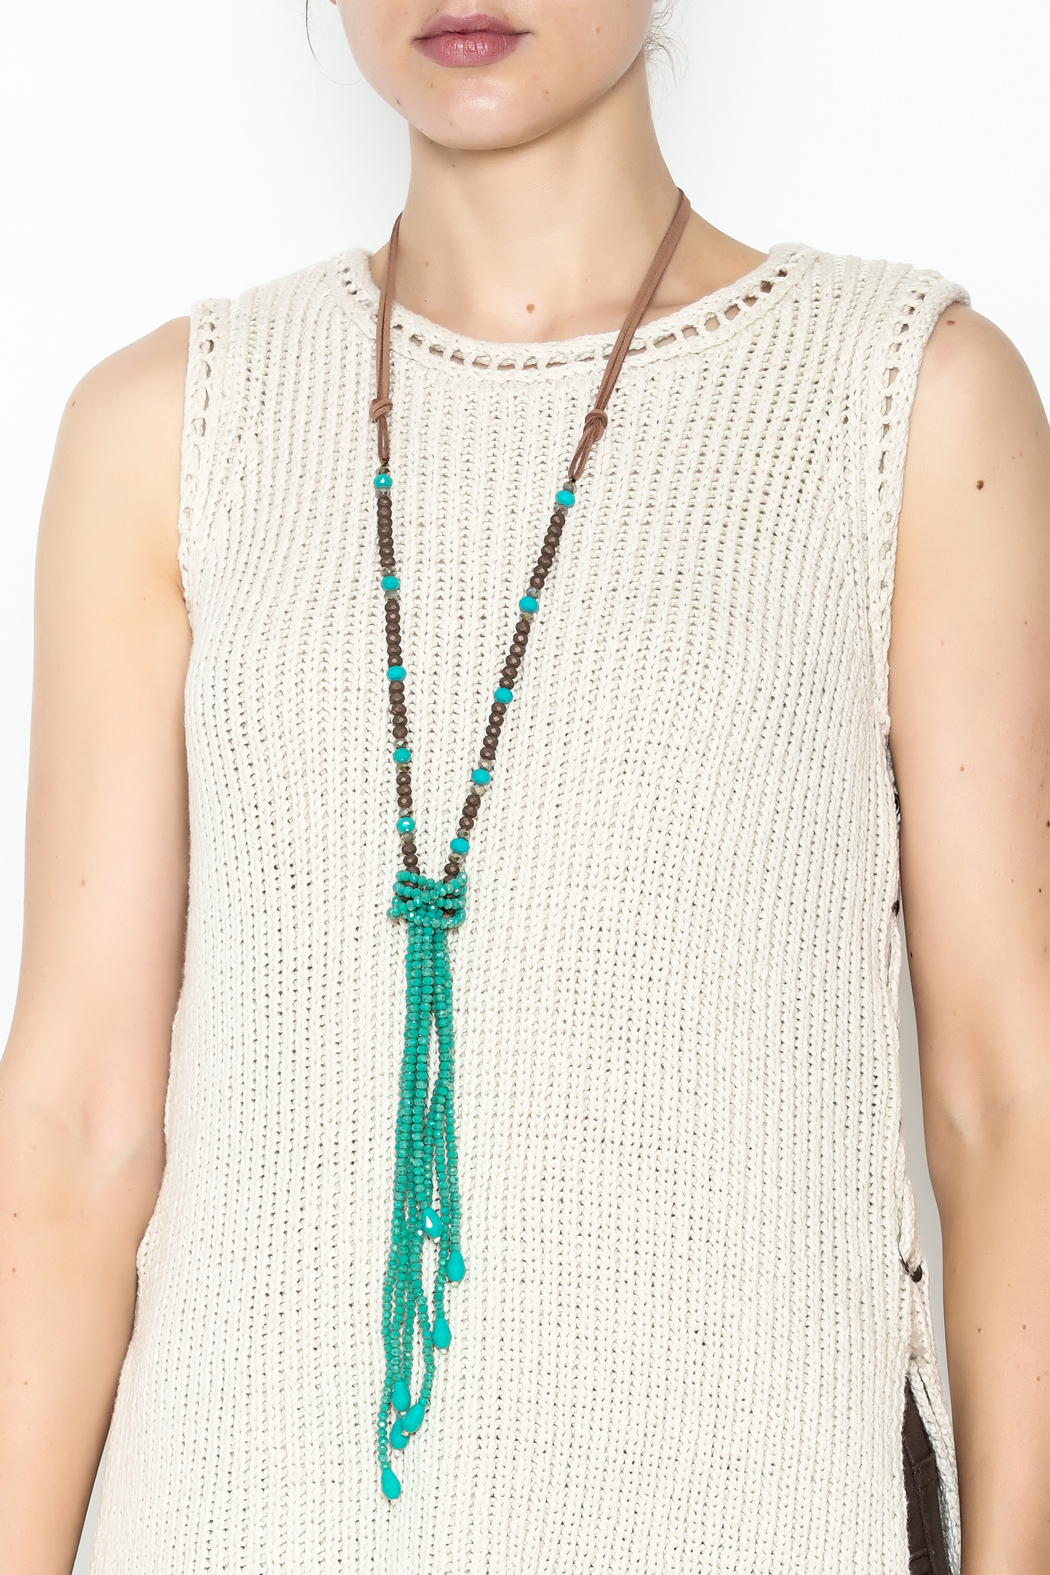 Southern Living Beaded Tassel Necklace - Main Image